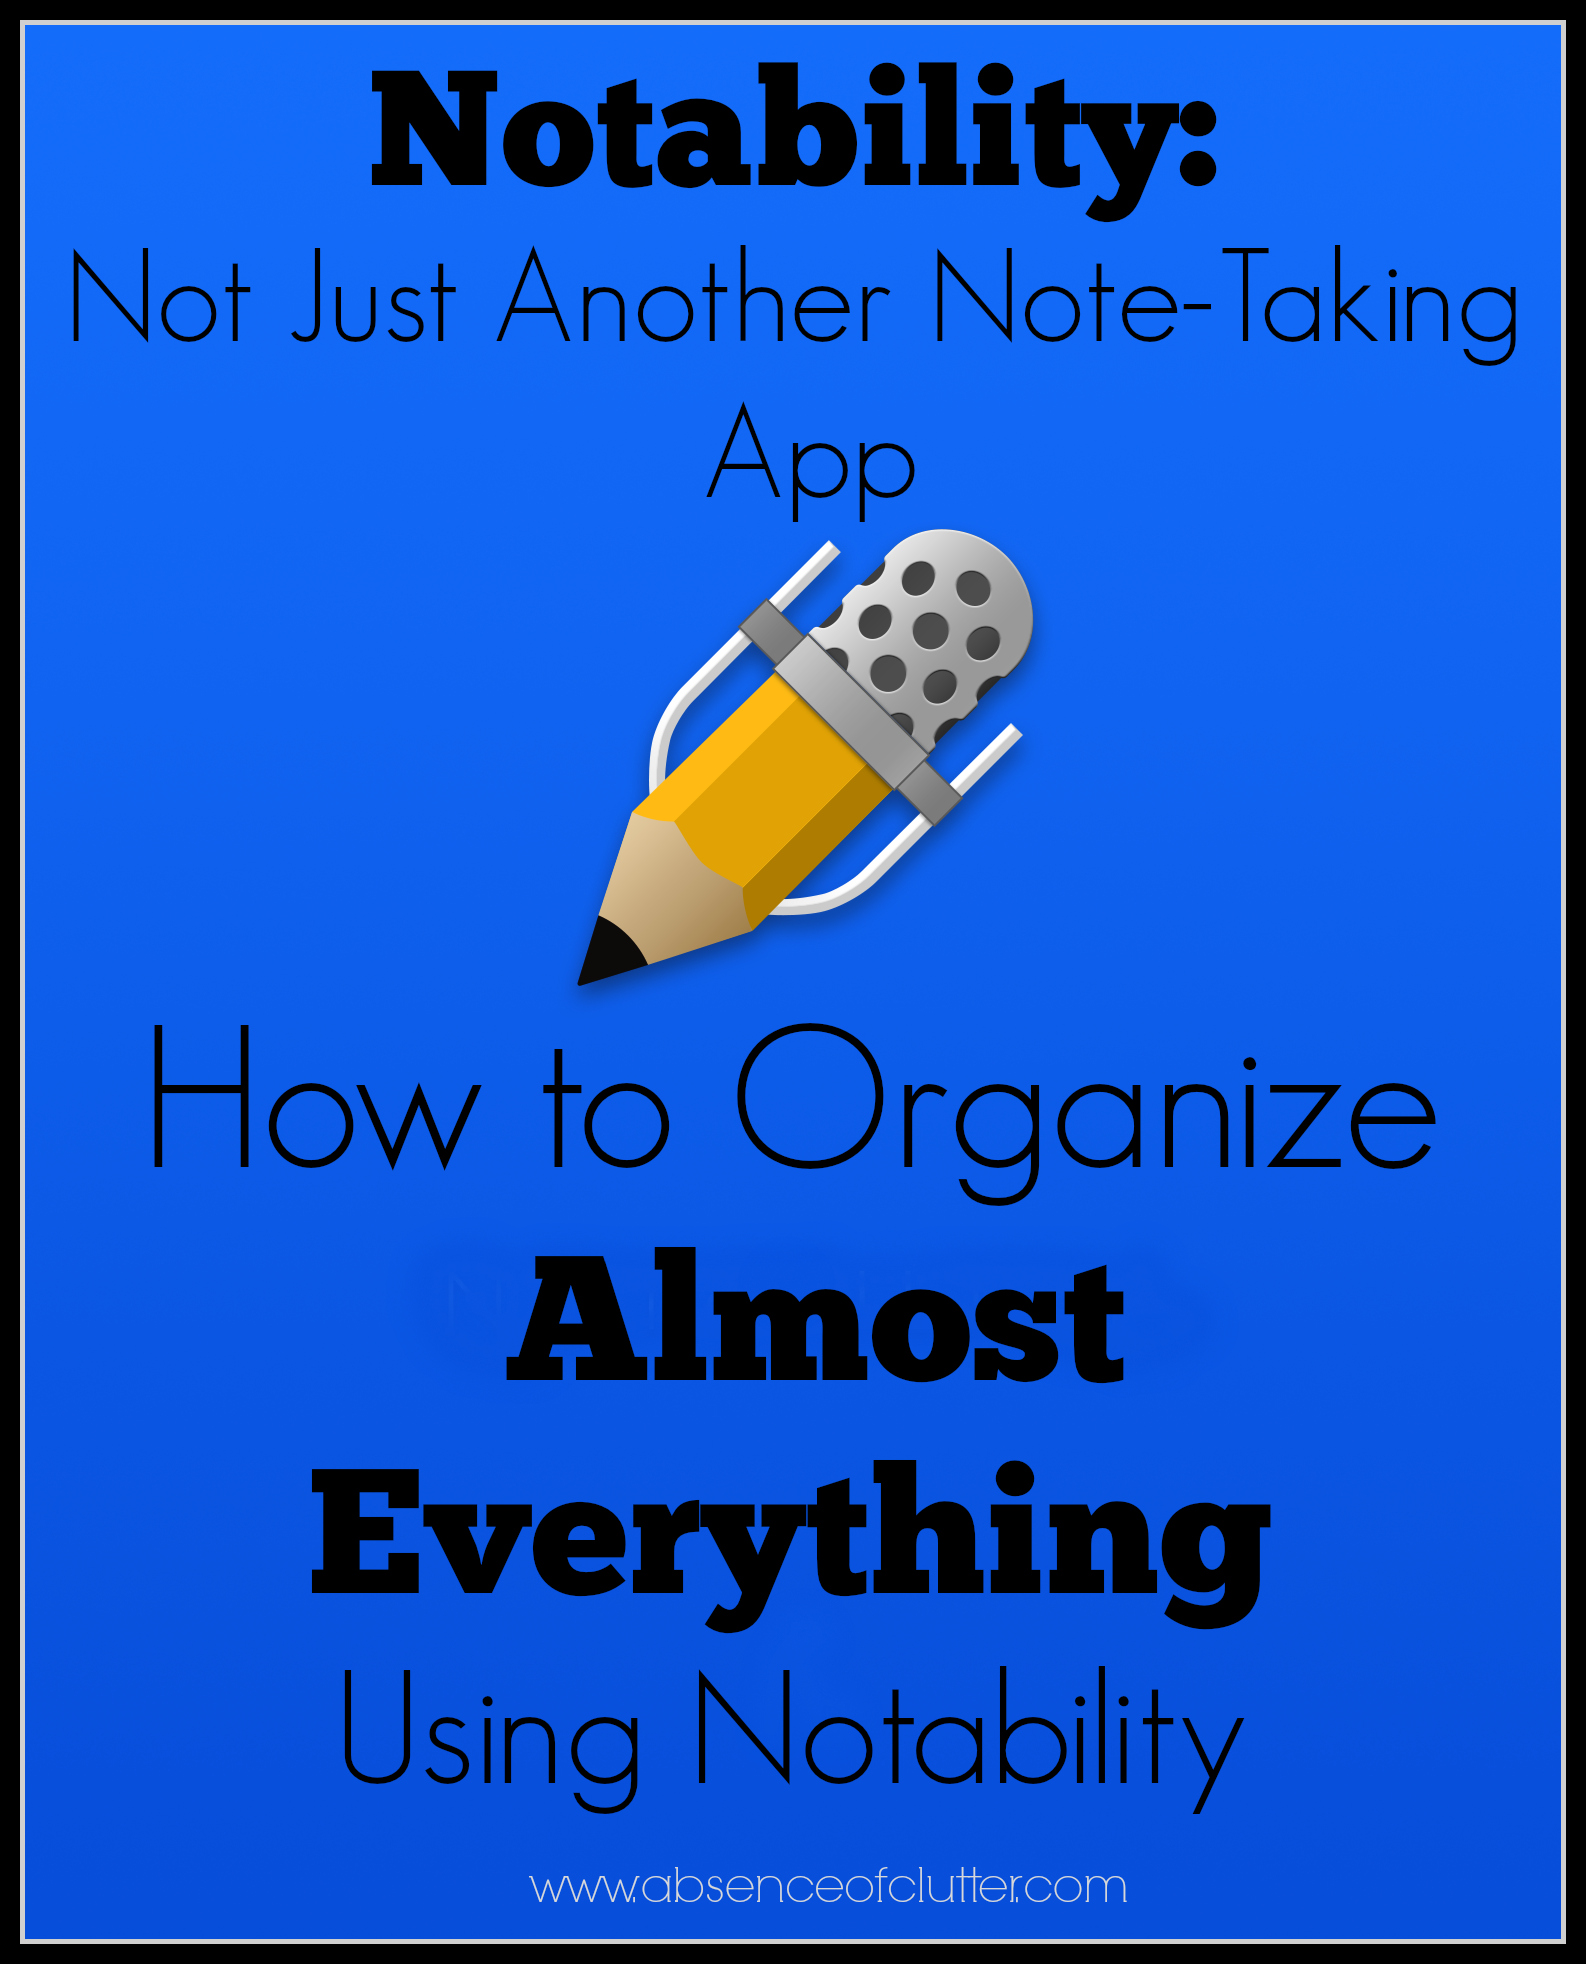 Notability Blog Title Pic 5